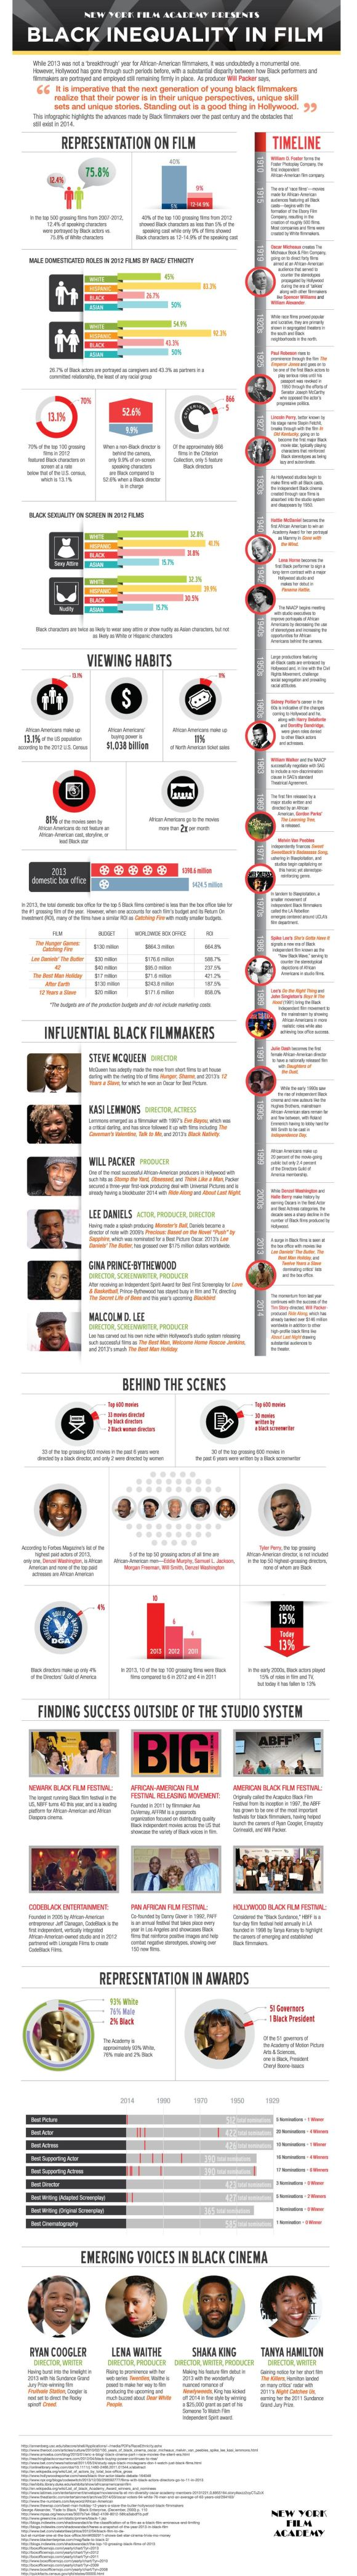 african-american-inforgraphic9ffont-nick